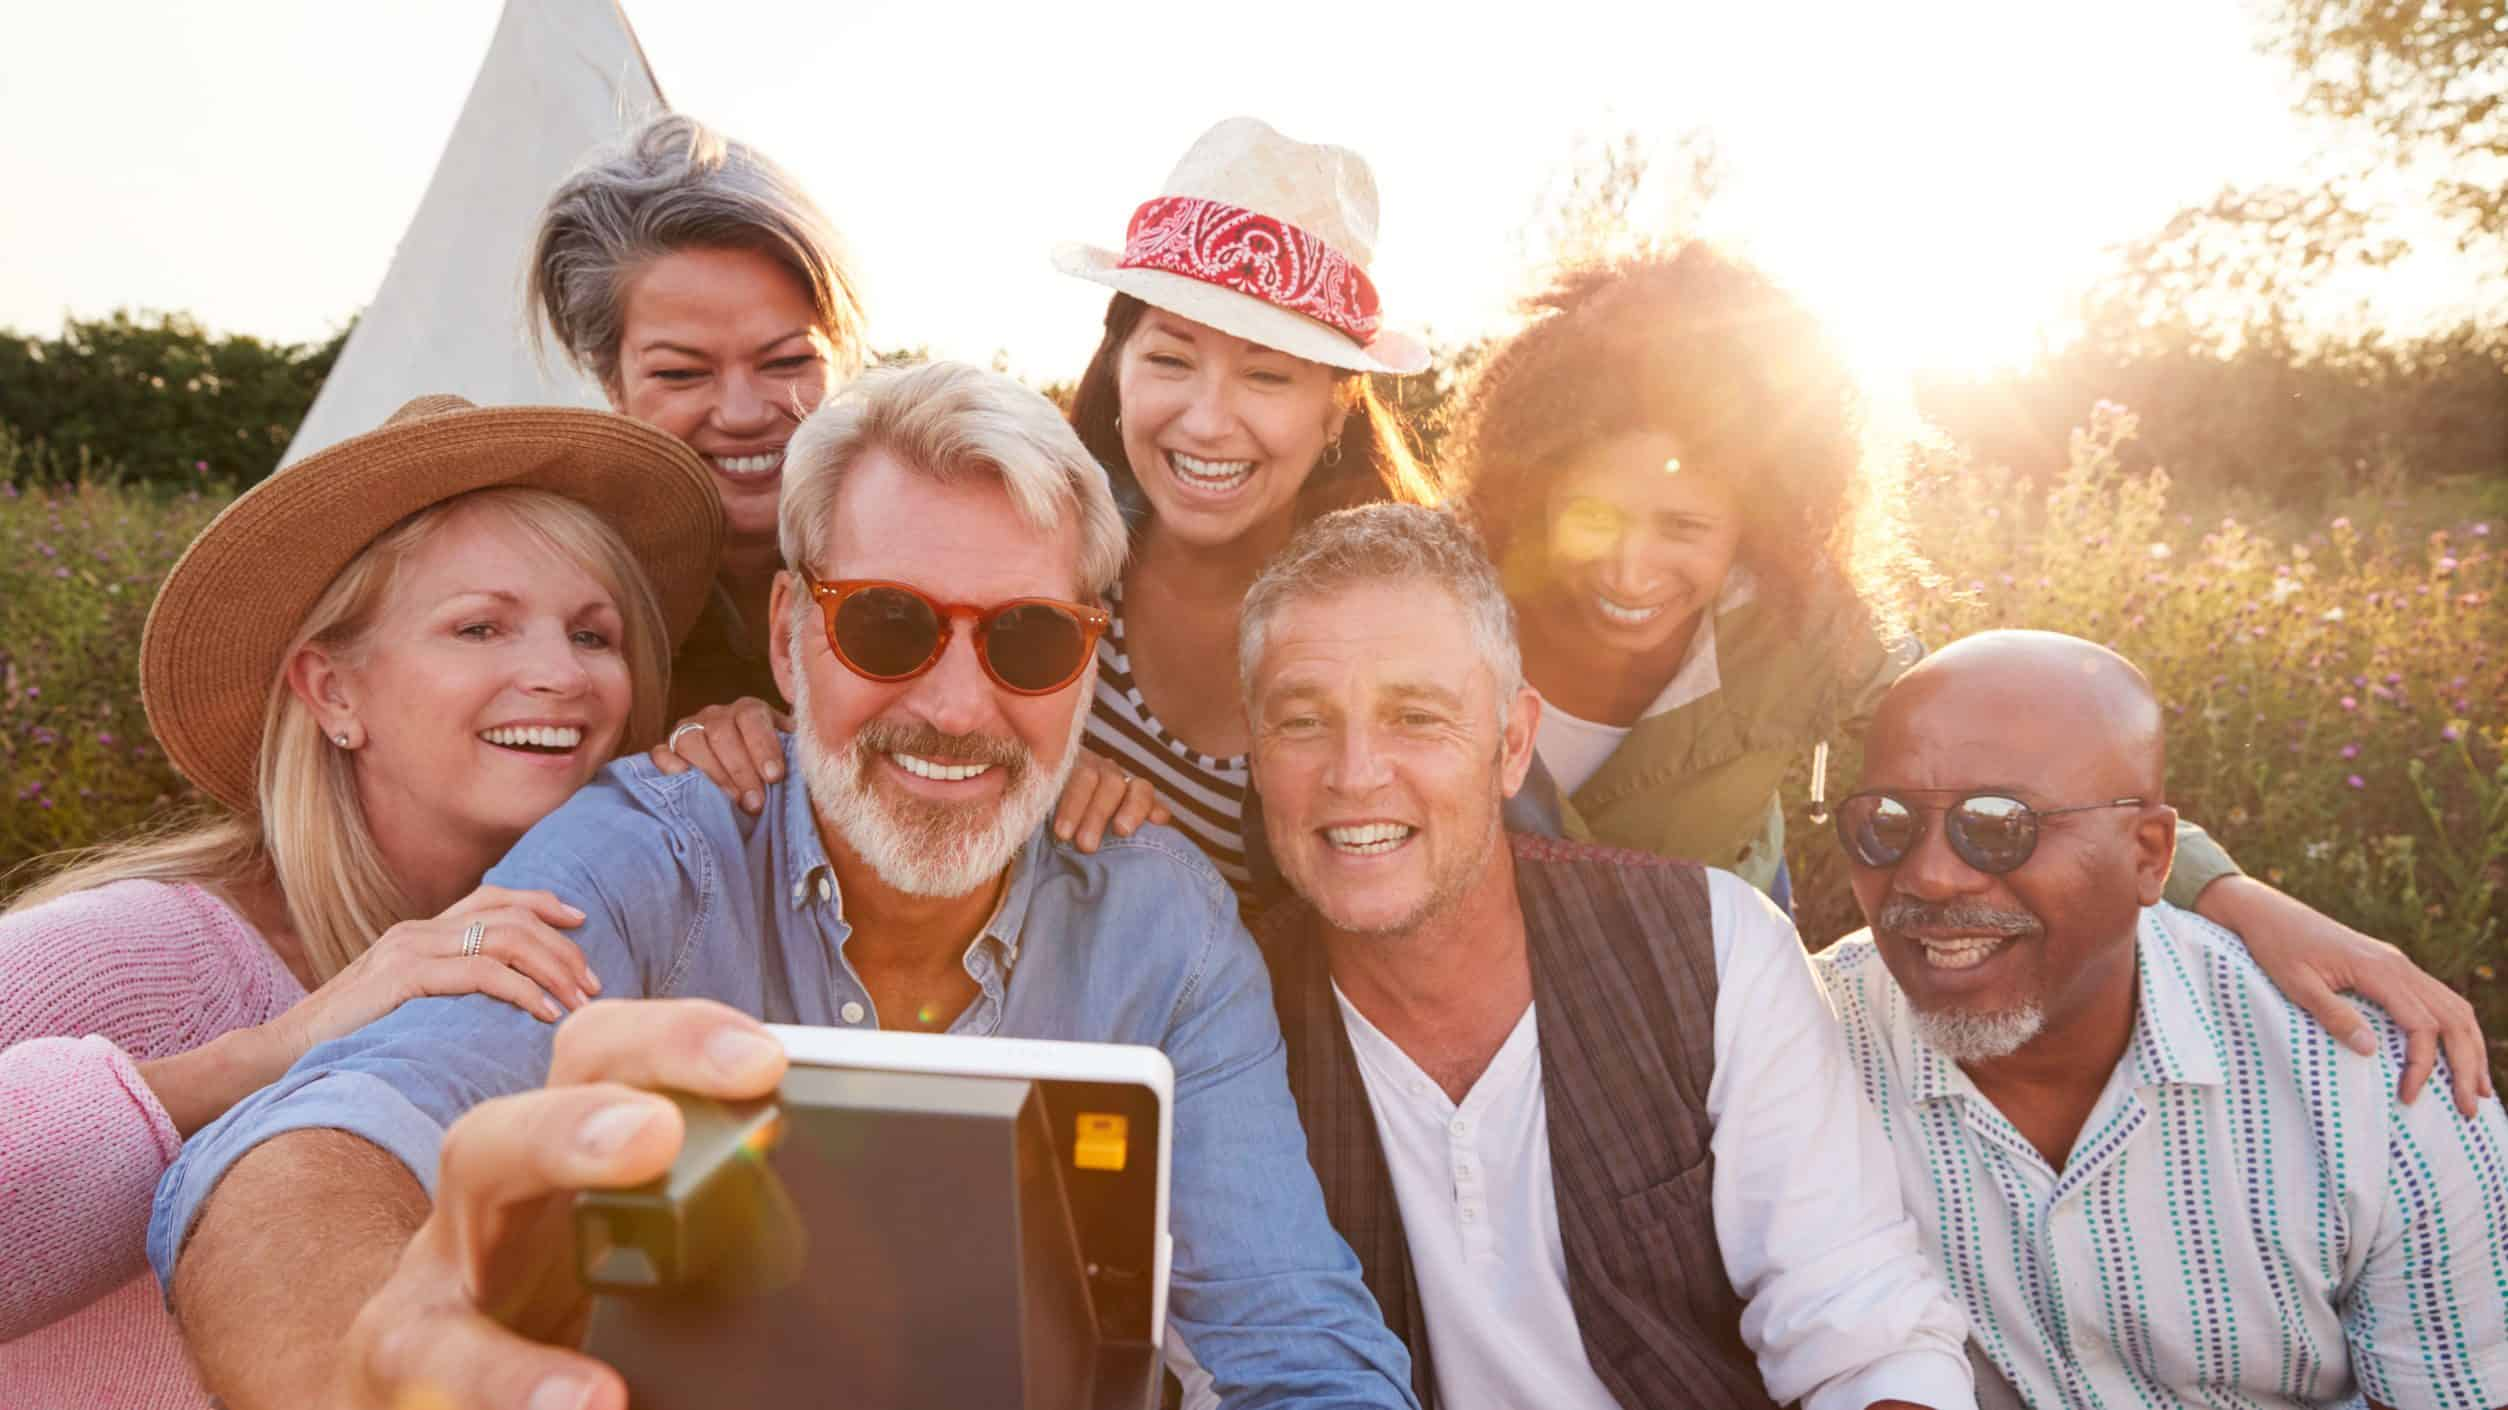 Group Of Mature Friends Posing For Selfie At Outdoor Campsite